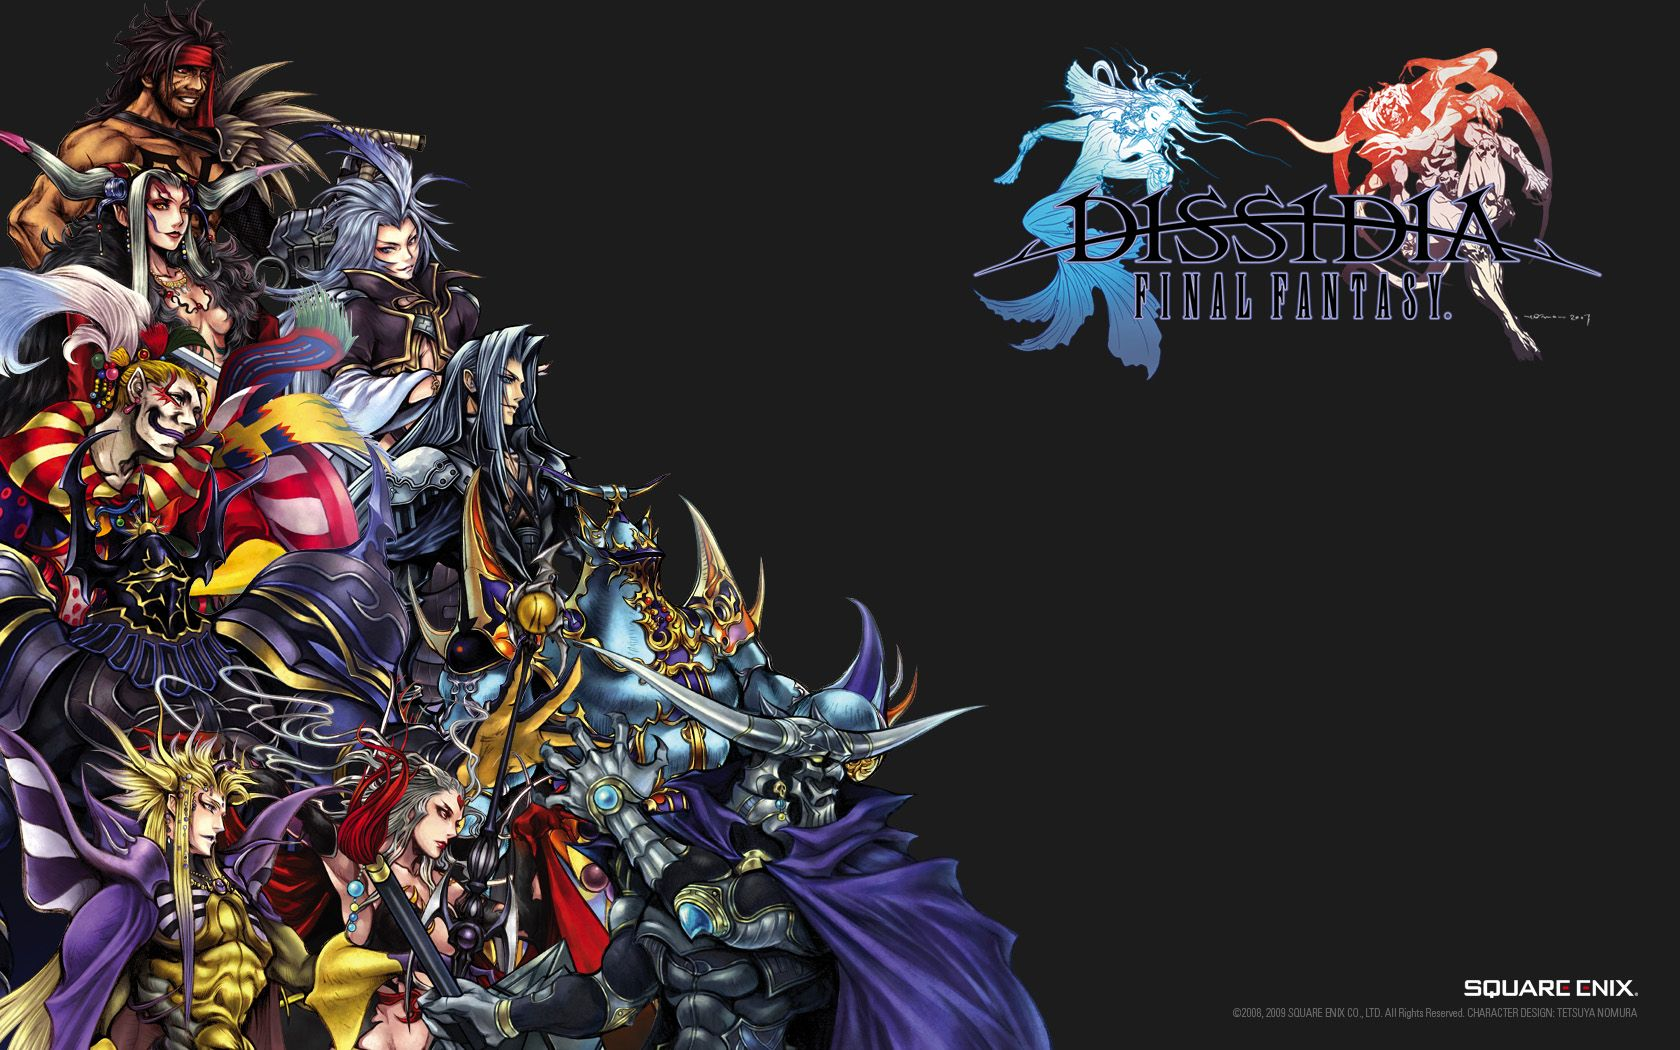 Other Pictures Of Dissidia 1080p Final Fantasy Dissidia